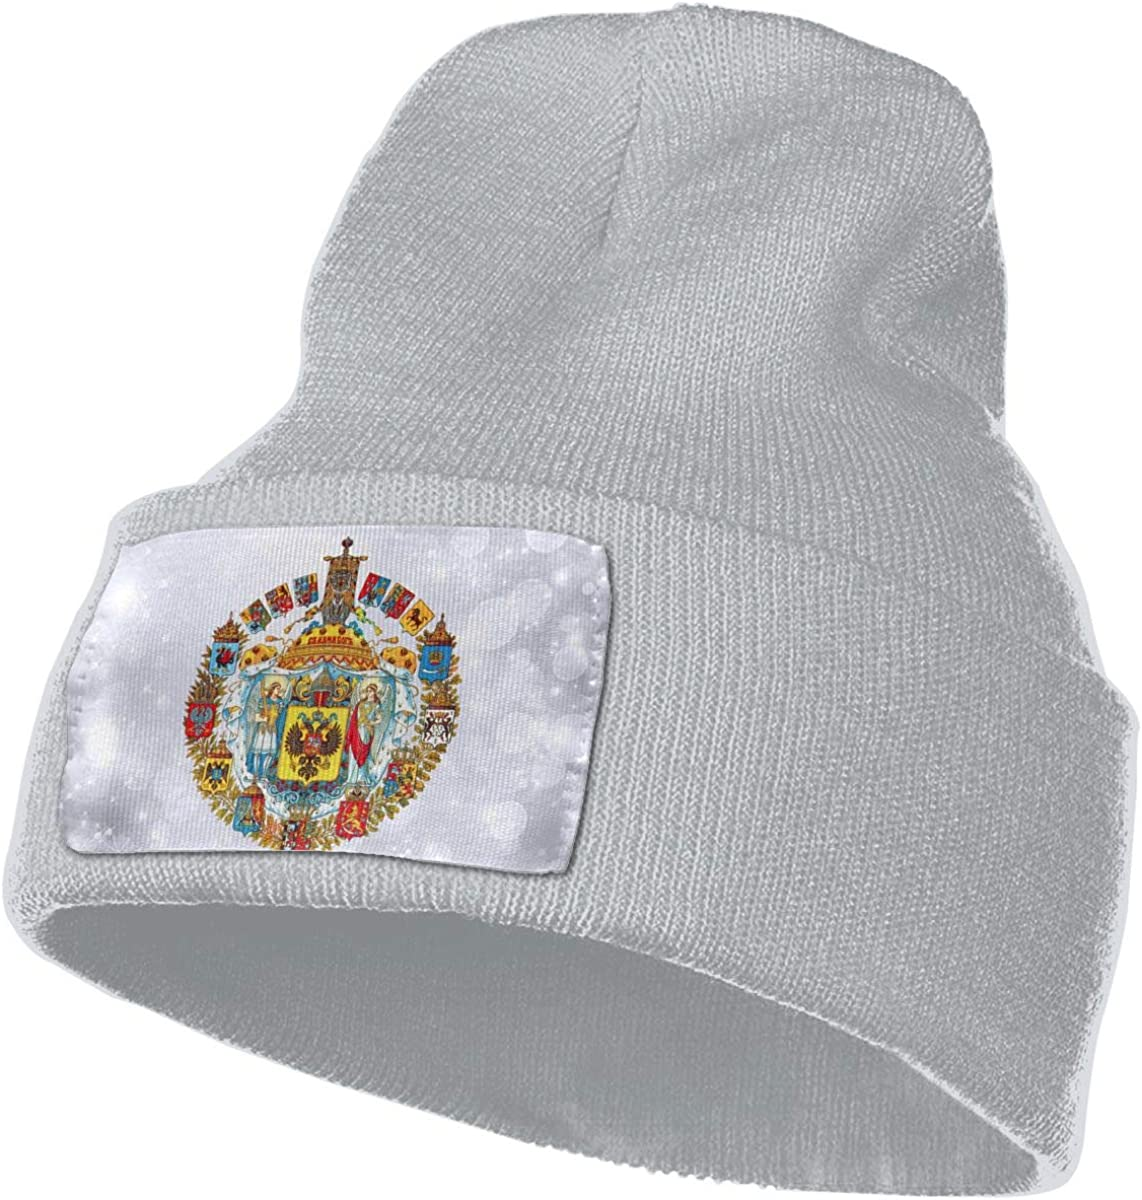 JimHappy Russian Empire Hat for Men and Women Winter Warm Hats Knit Slouchy Thick Skull Cap